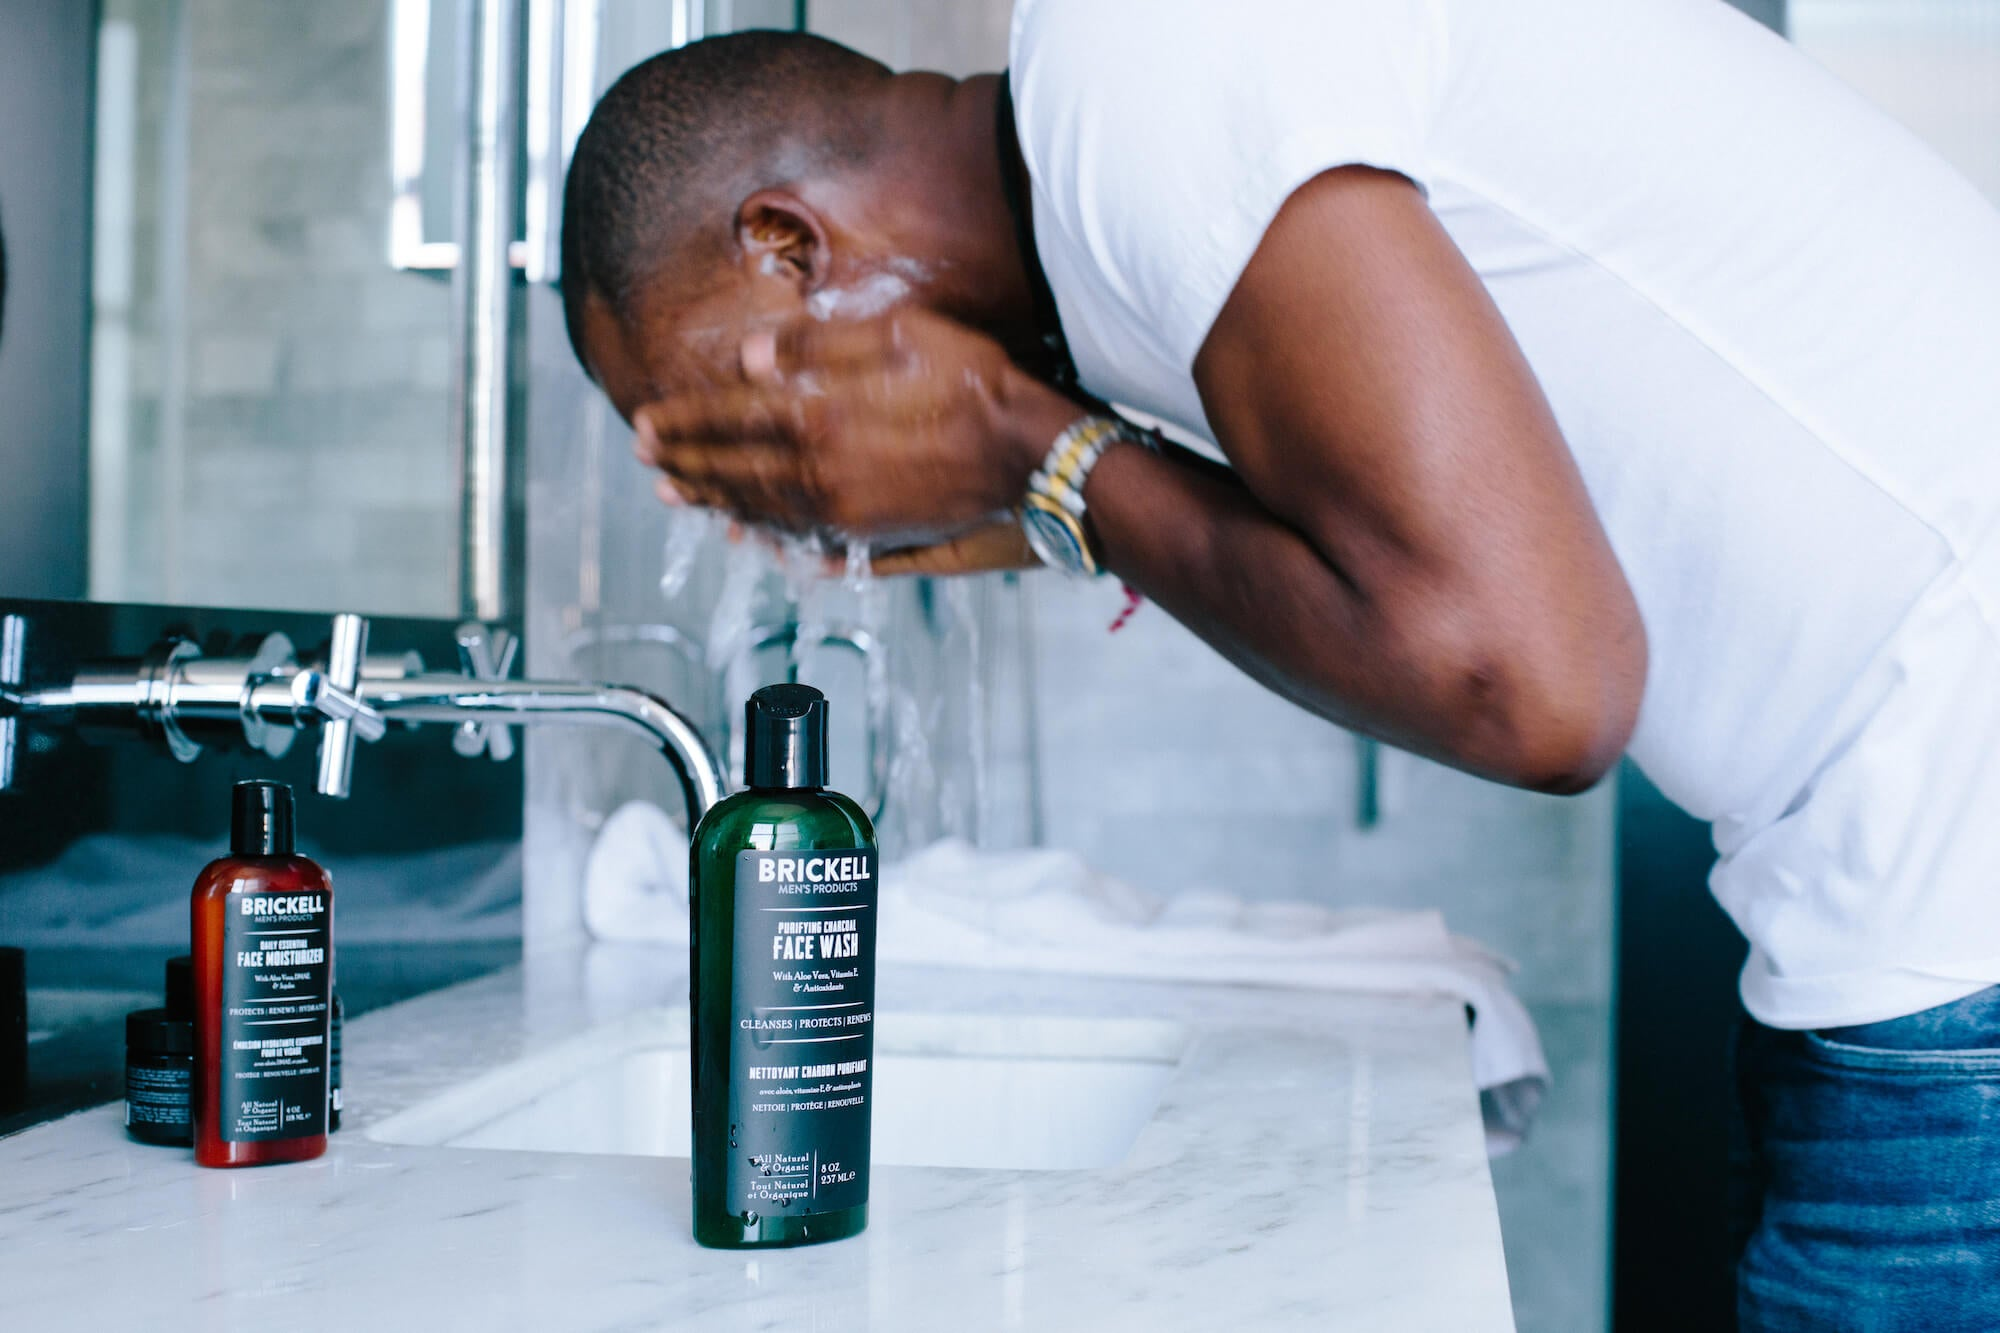 A basic men's face care routine with face wash and moisturizer.